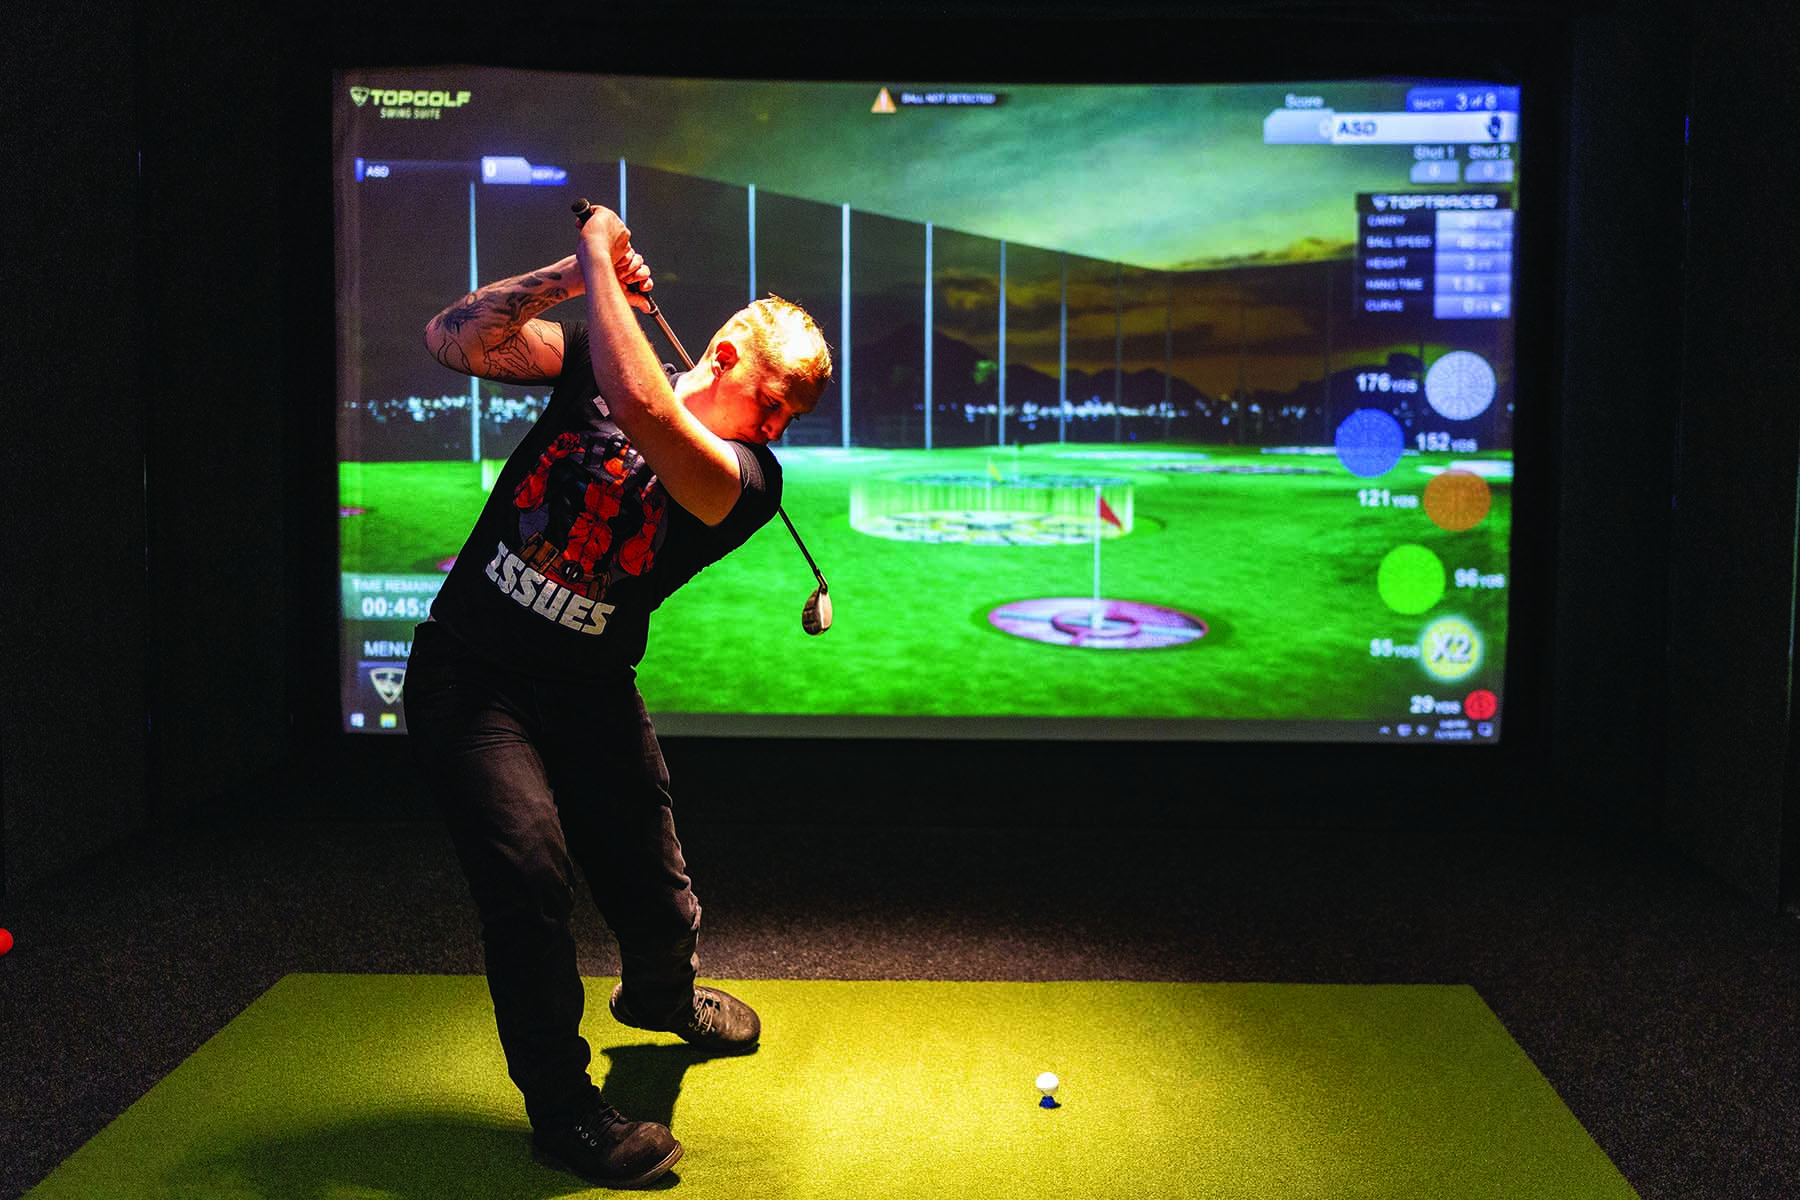 Main Post Rec Center Topgolf Swing Suite and Virtual Reality